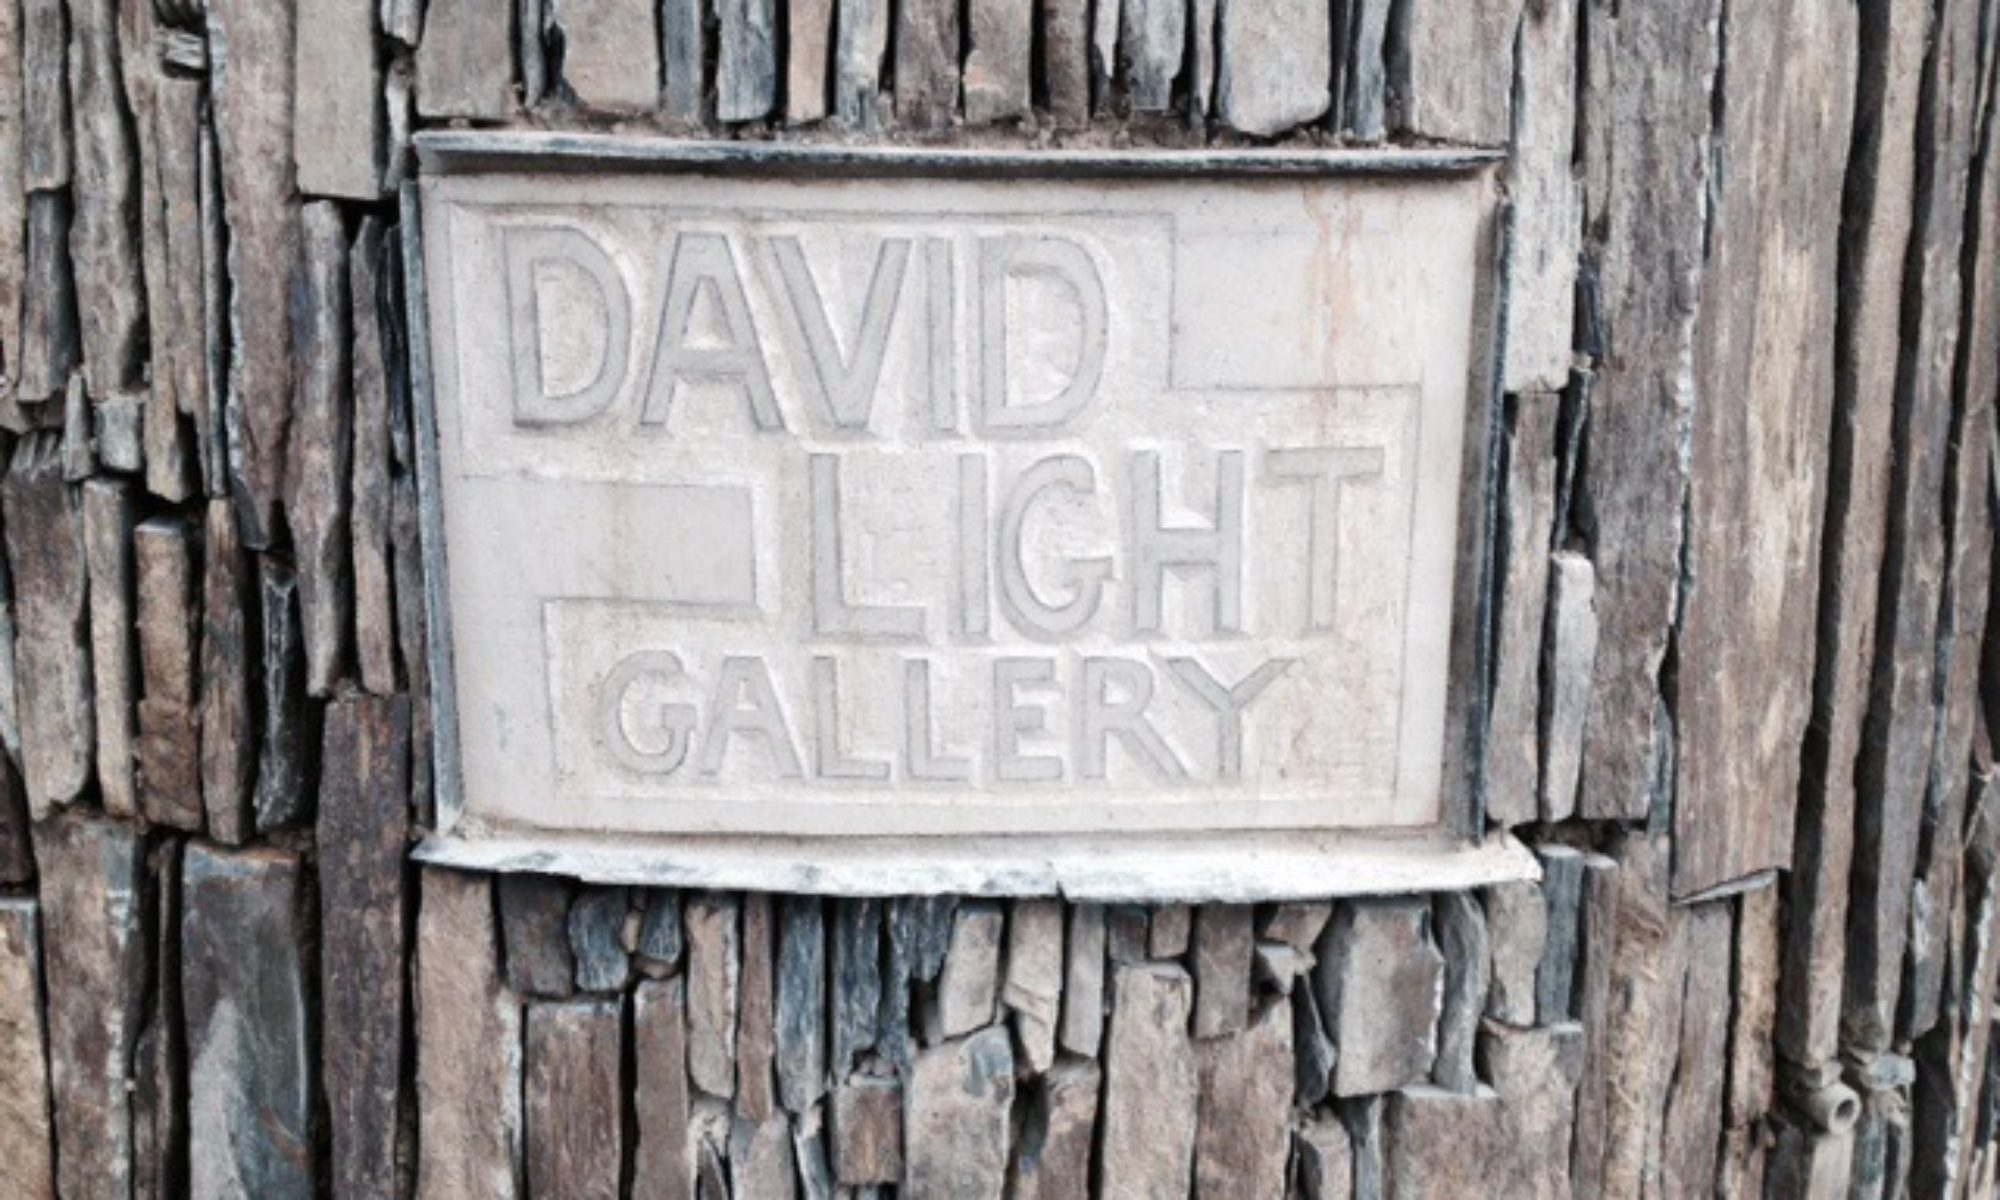 David A Light Gallery